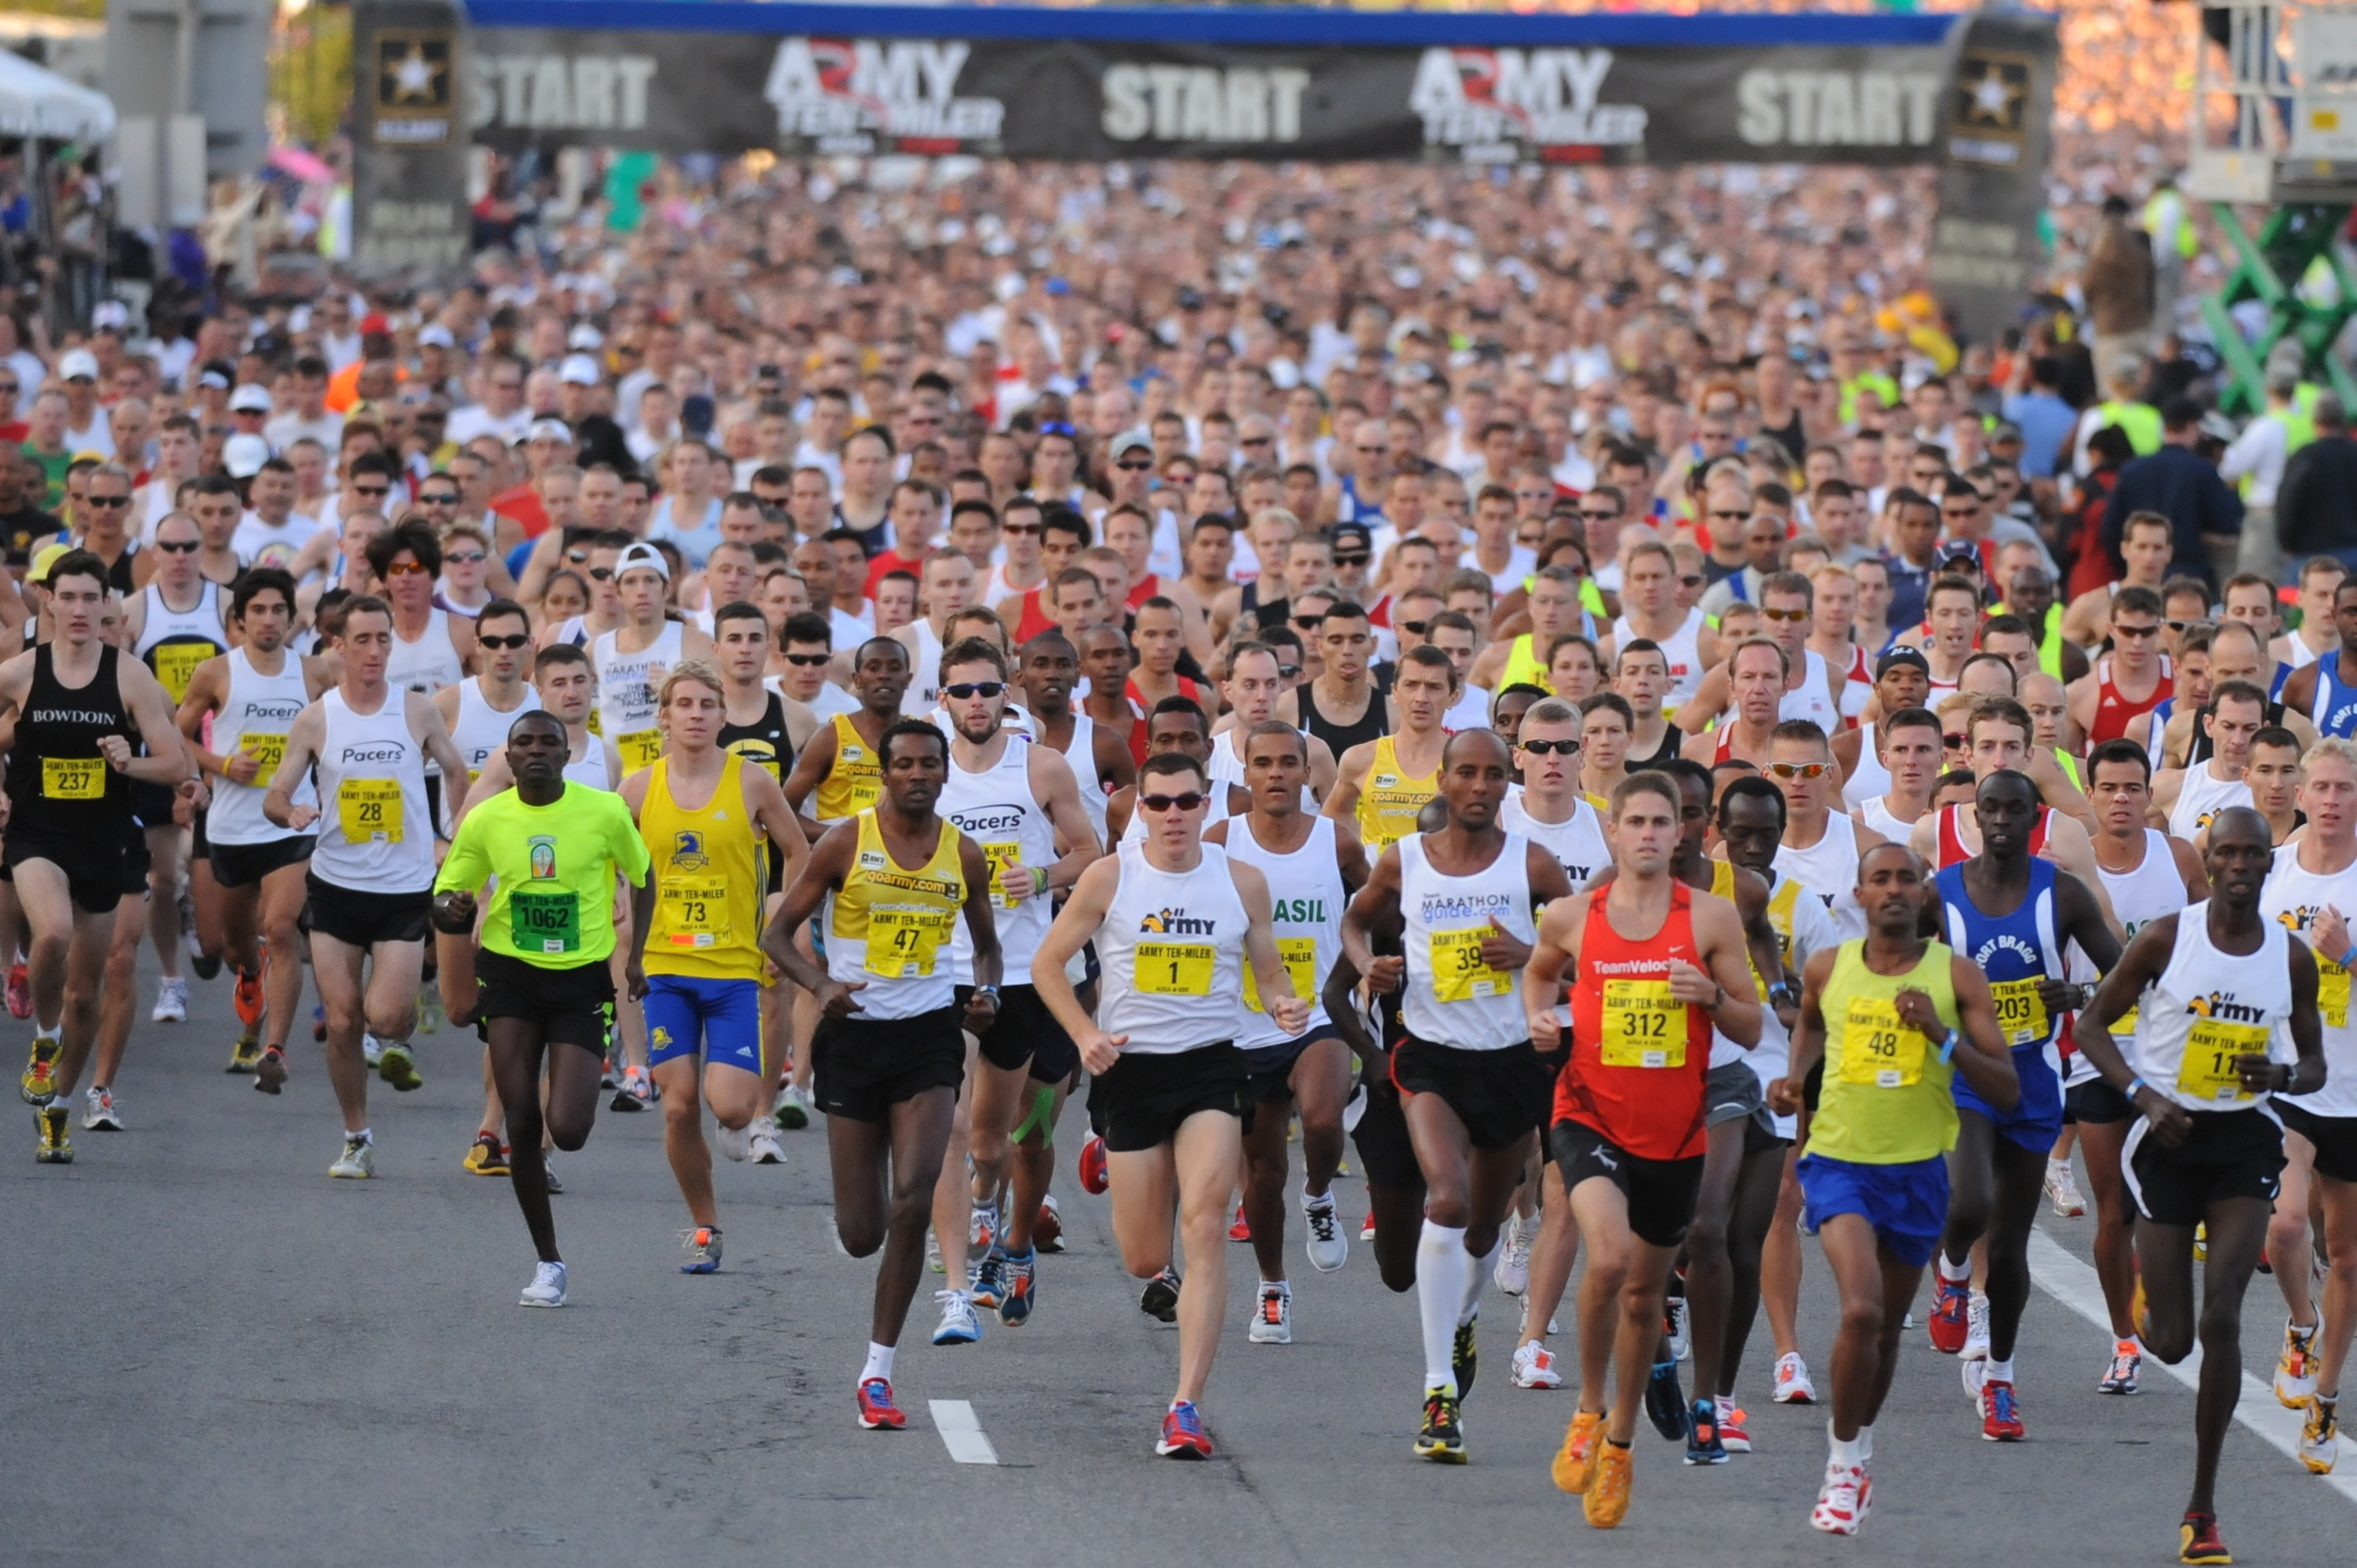 Training your brain could give you that extra edge in the big race.   U.S. Army/Flickr  (CC BY 2.0)